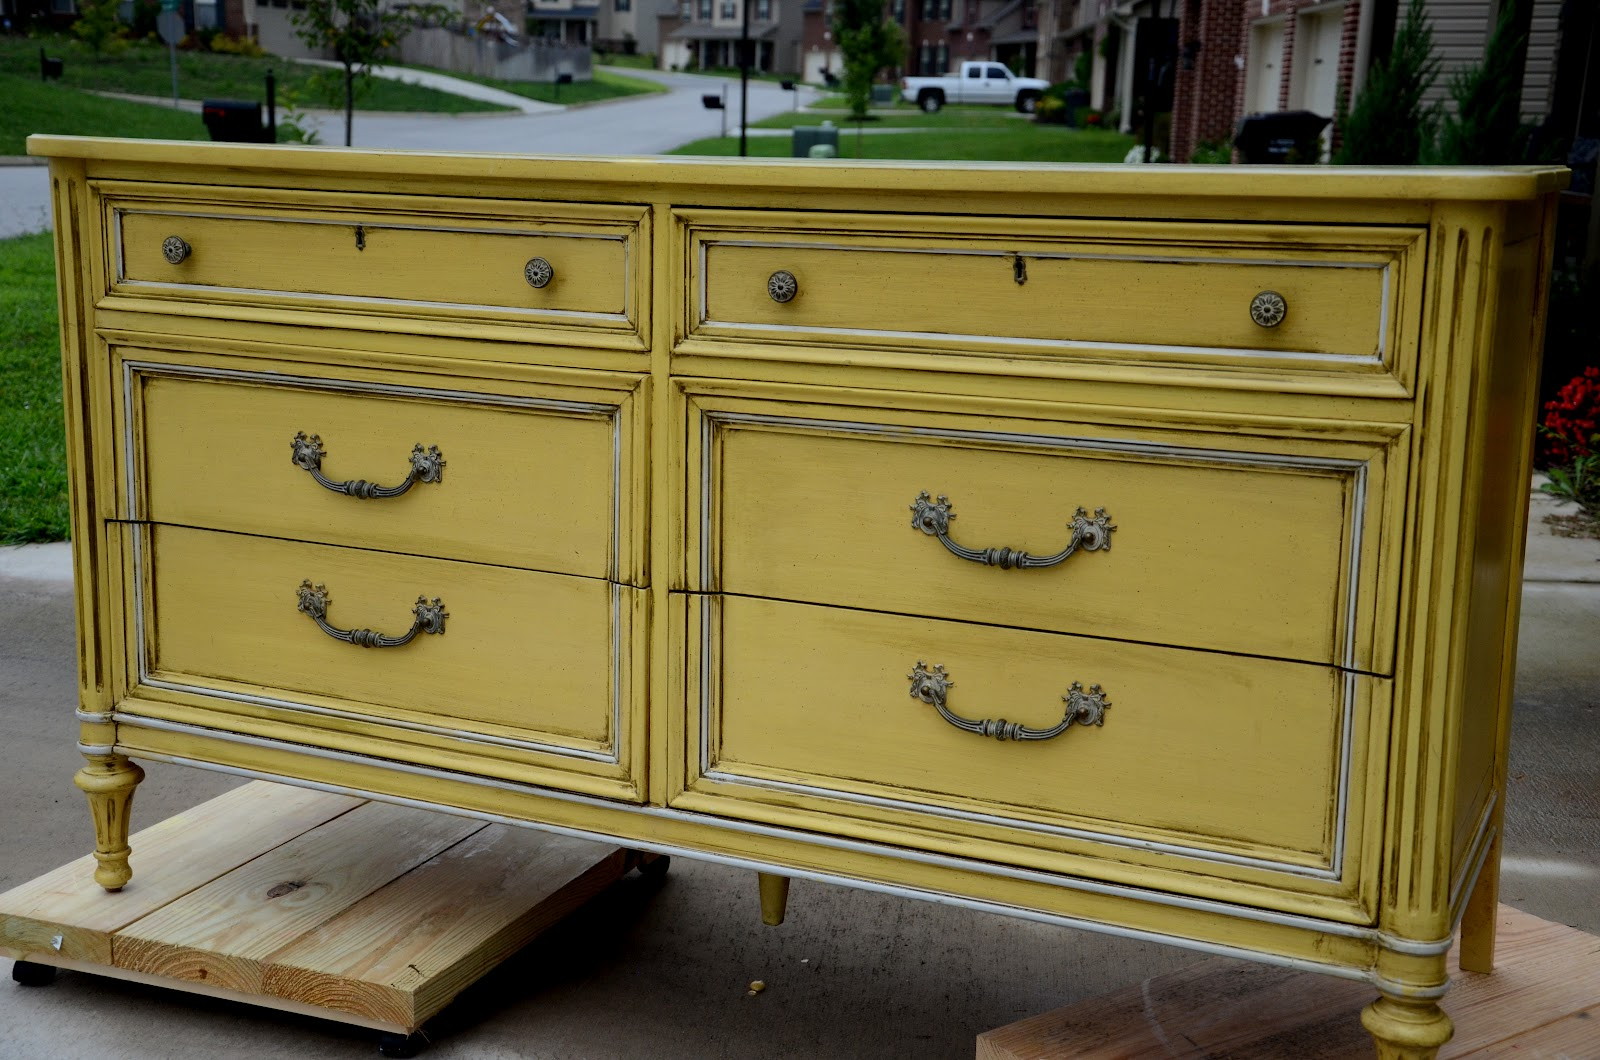 Painted Dresser Ideas Pleasing Of Yellow Painted Dresser | The Painted Perch Photo